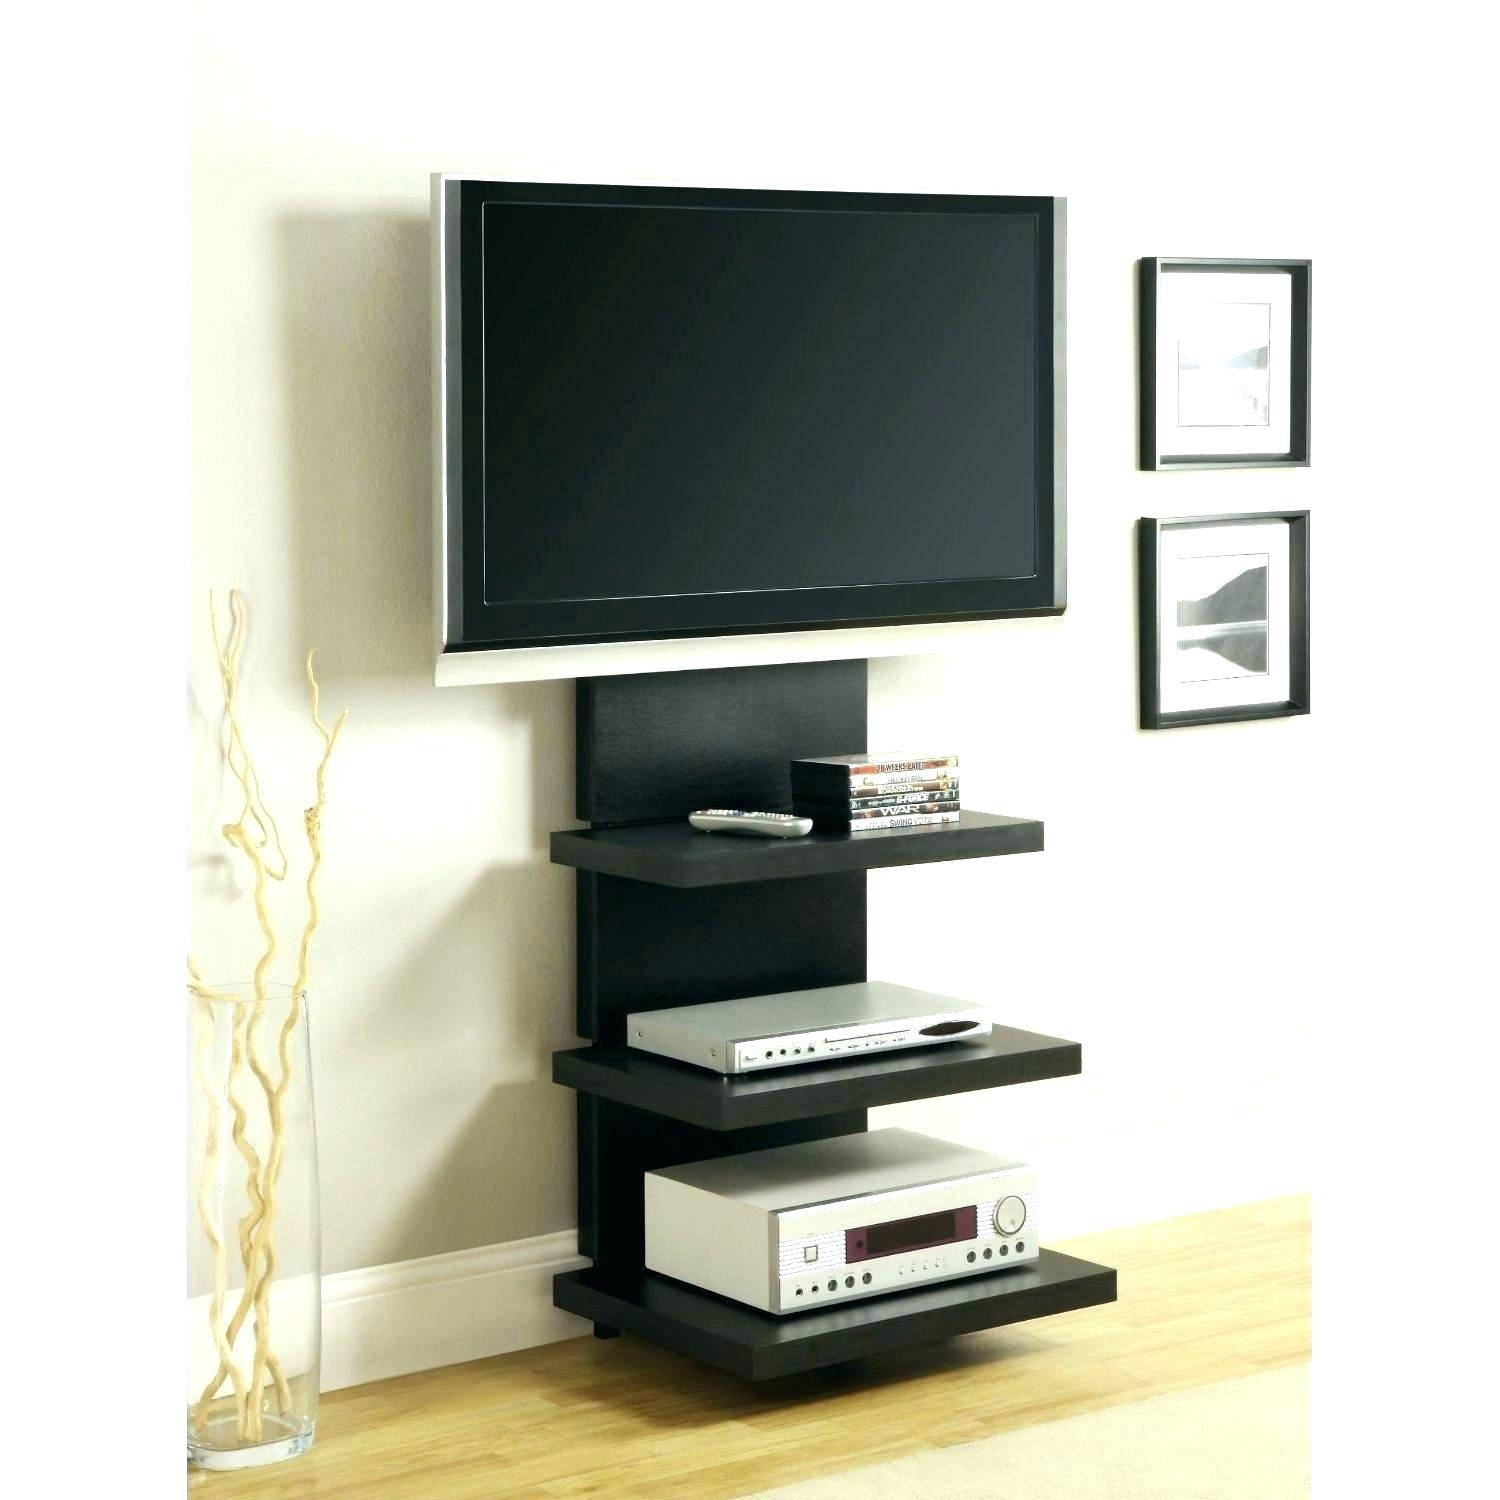 Tv Stand : Excellent Corner Tv Mount And Shelves 132 Bedroom within Unusual Tv Cabinets (Image 11 of 15)